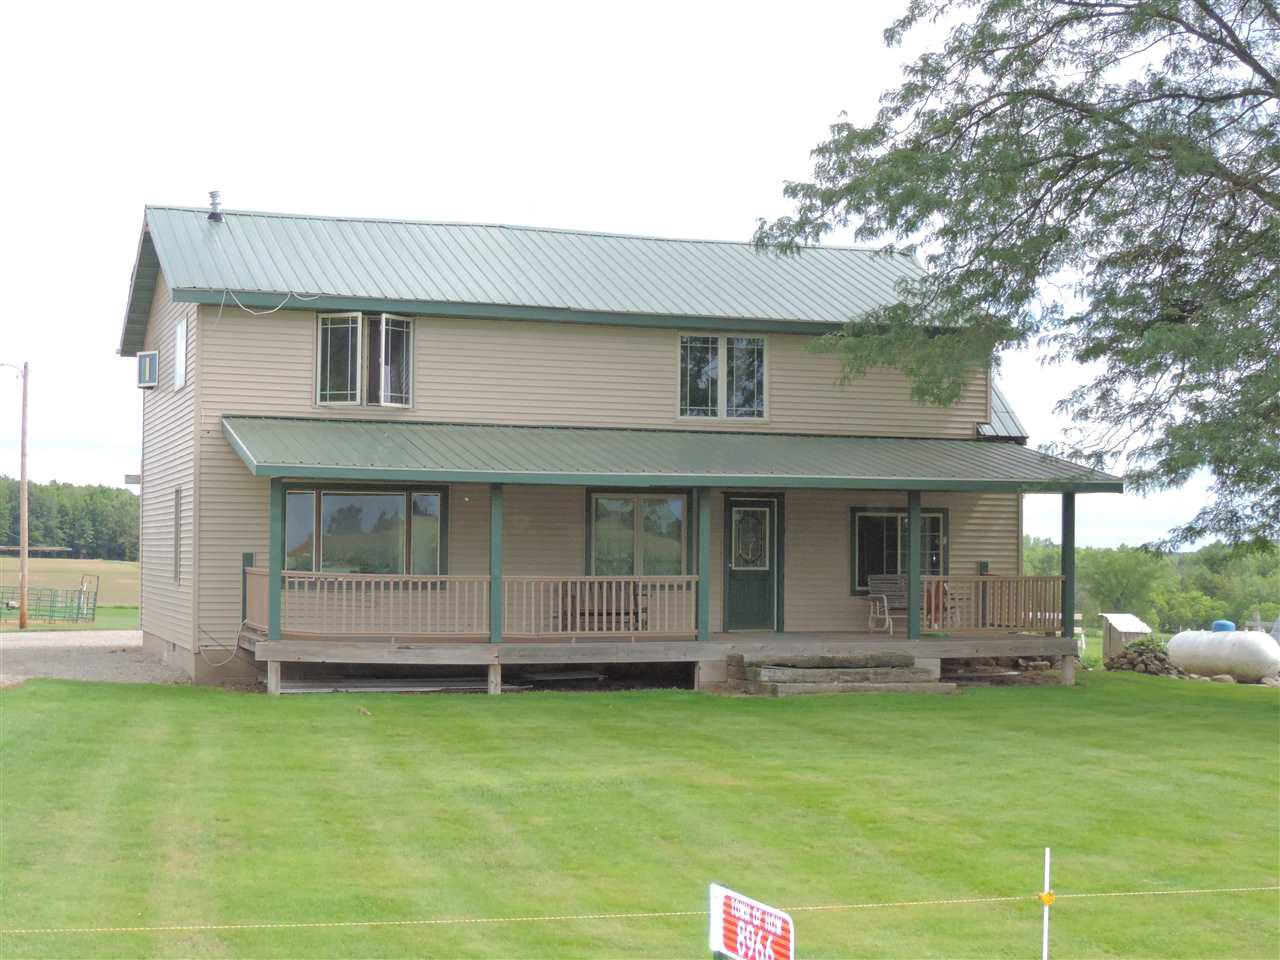 Horse lovers dream!! Approximately 67 acres of land, 40x60 pole shed, large horse barn with stalls and indoor arena, outdoor riding area and additional outbuildings.  3 bedrom 2 bath two story home!